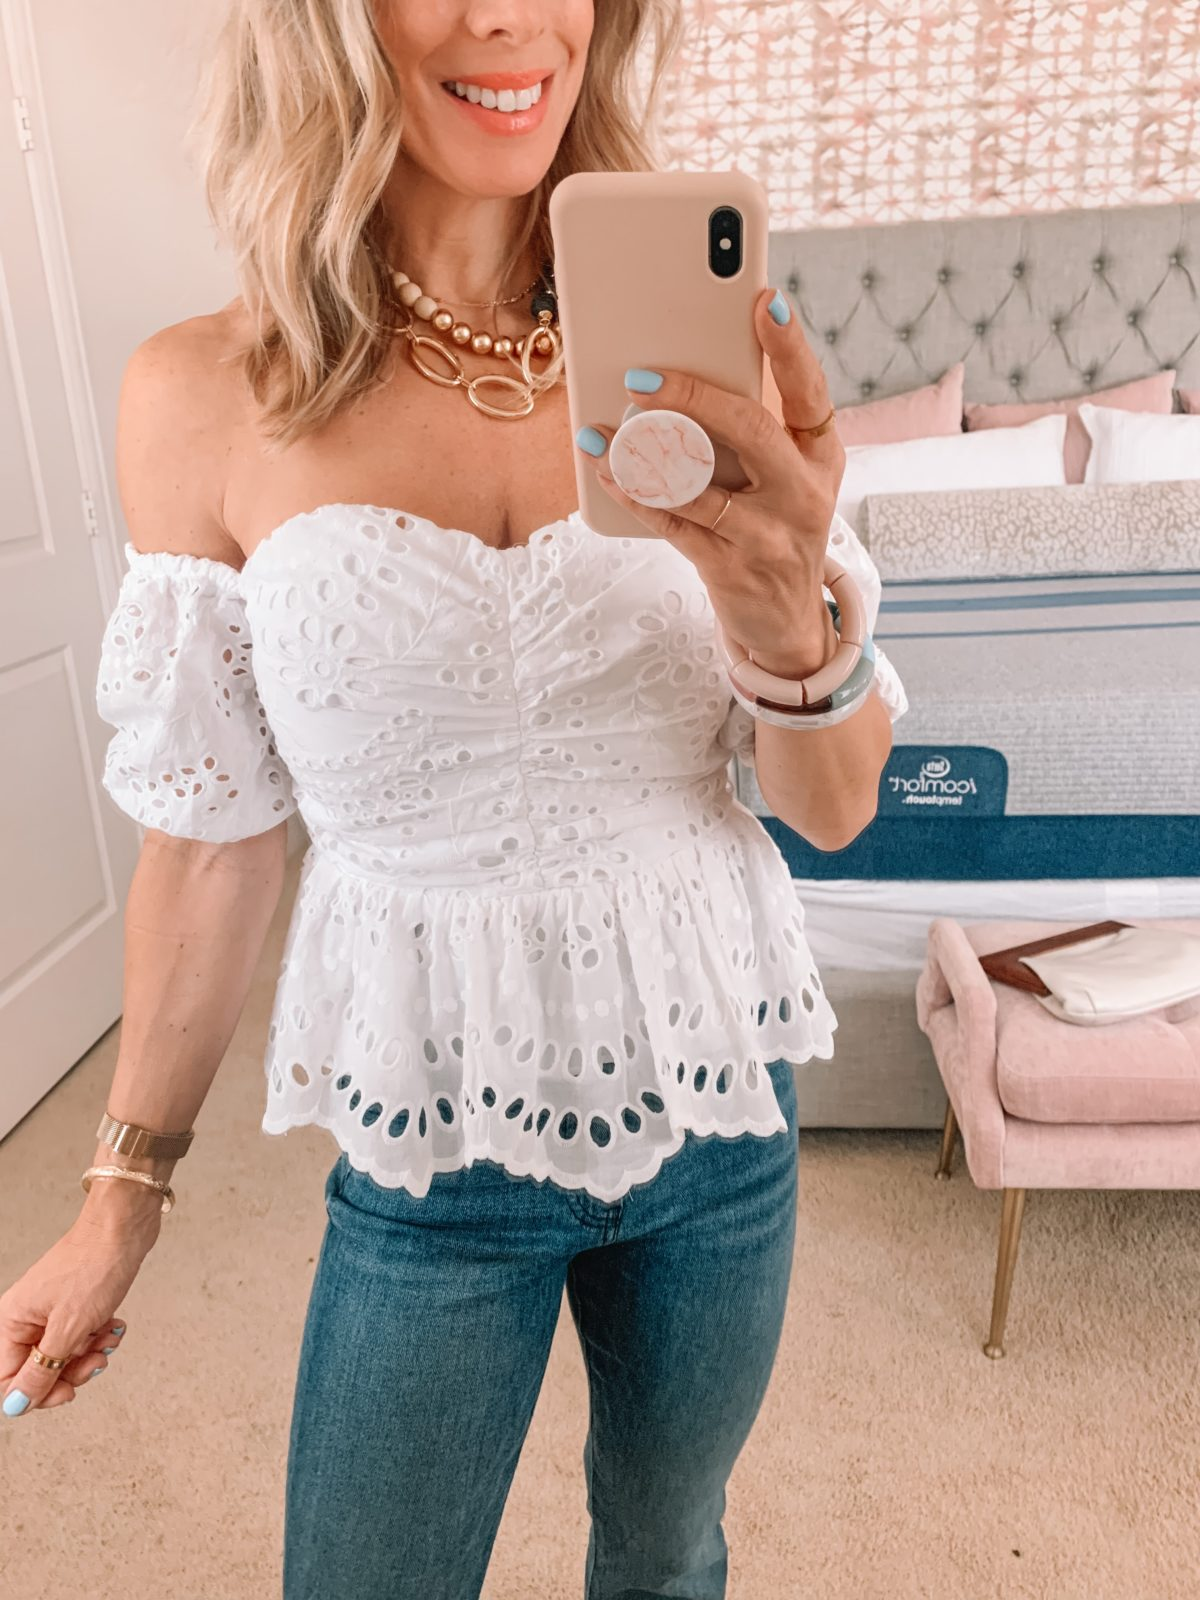 Dressing Room Finds, Eyelet Off the Shoulder Top and Jeans with Sandals